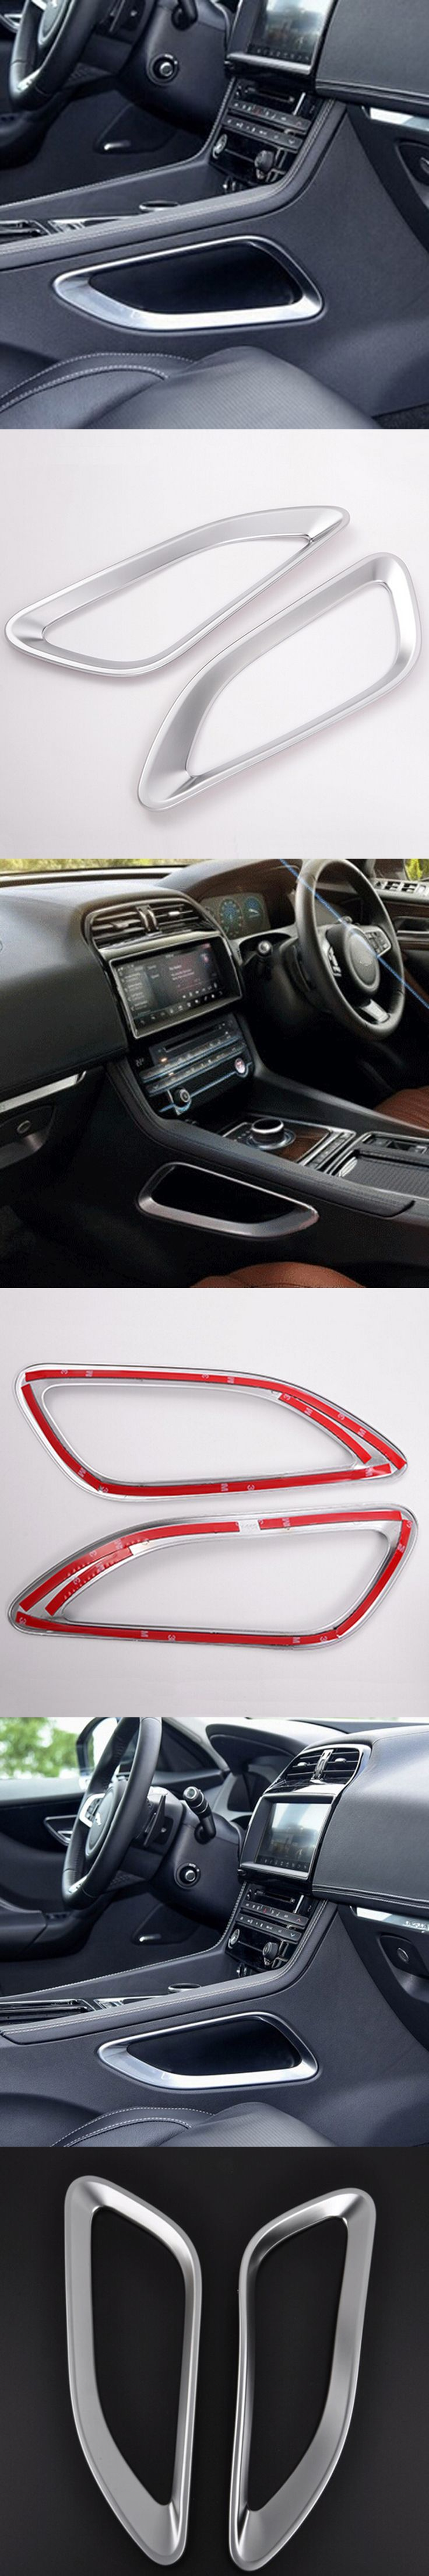 interior Accessories for jaguar f pace f-pace side console gear panel frame storage box decorative trim covers stickers